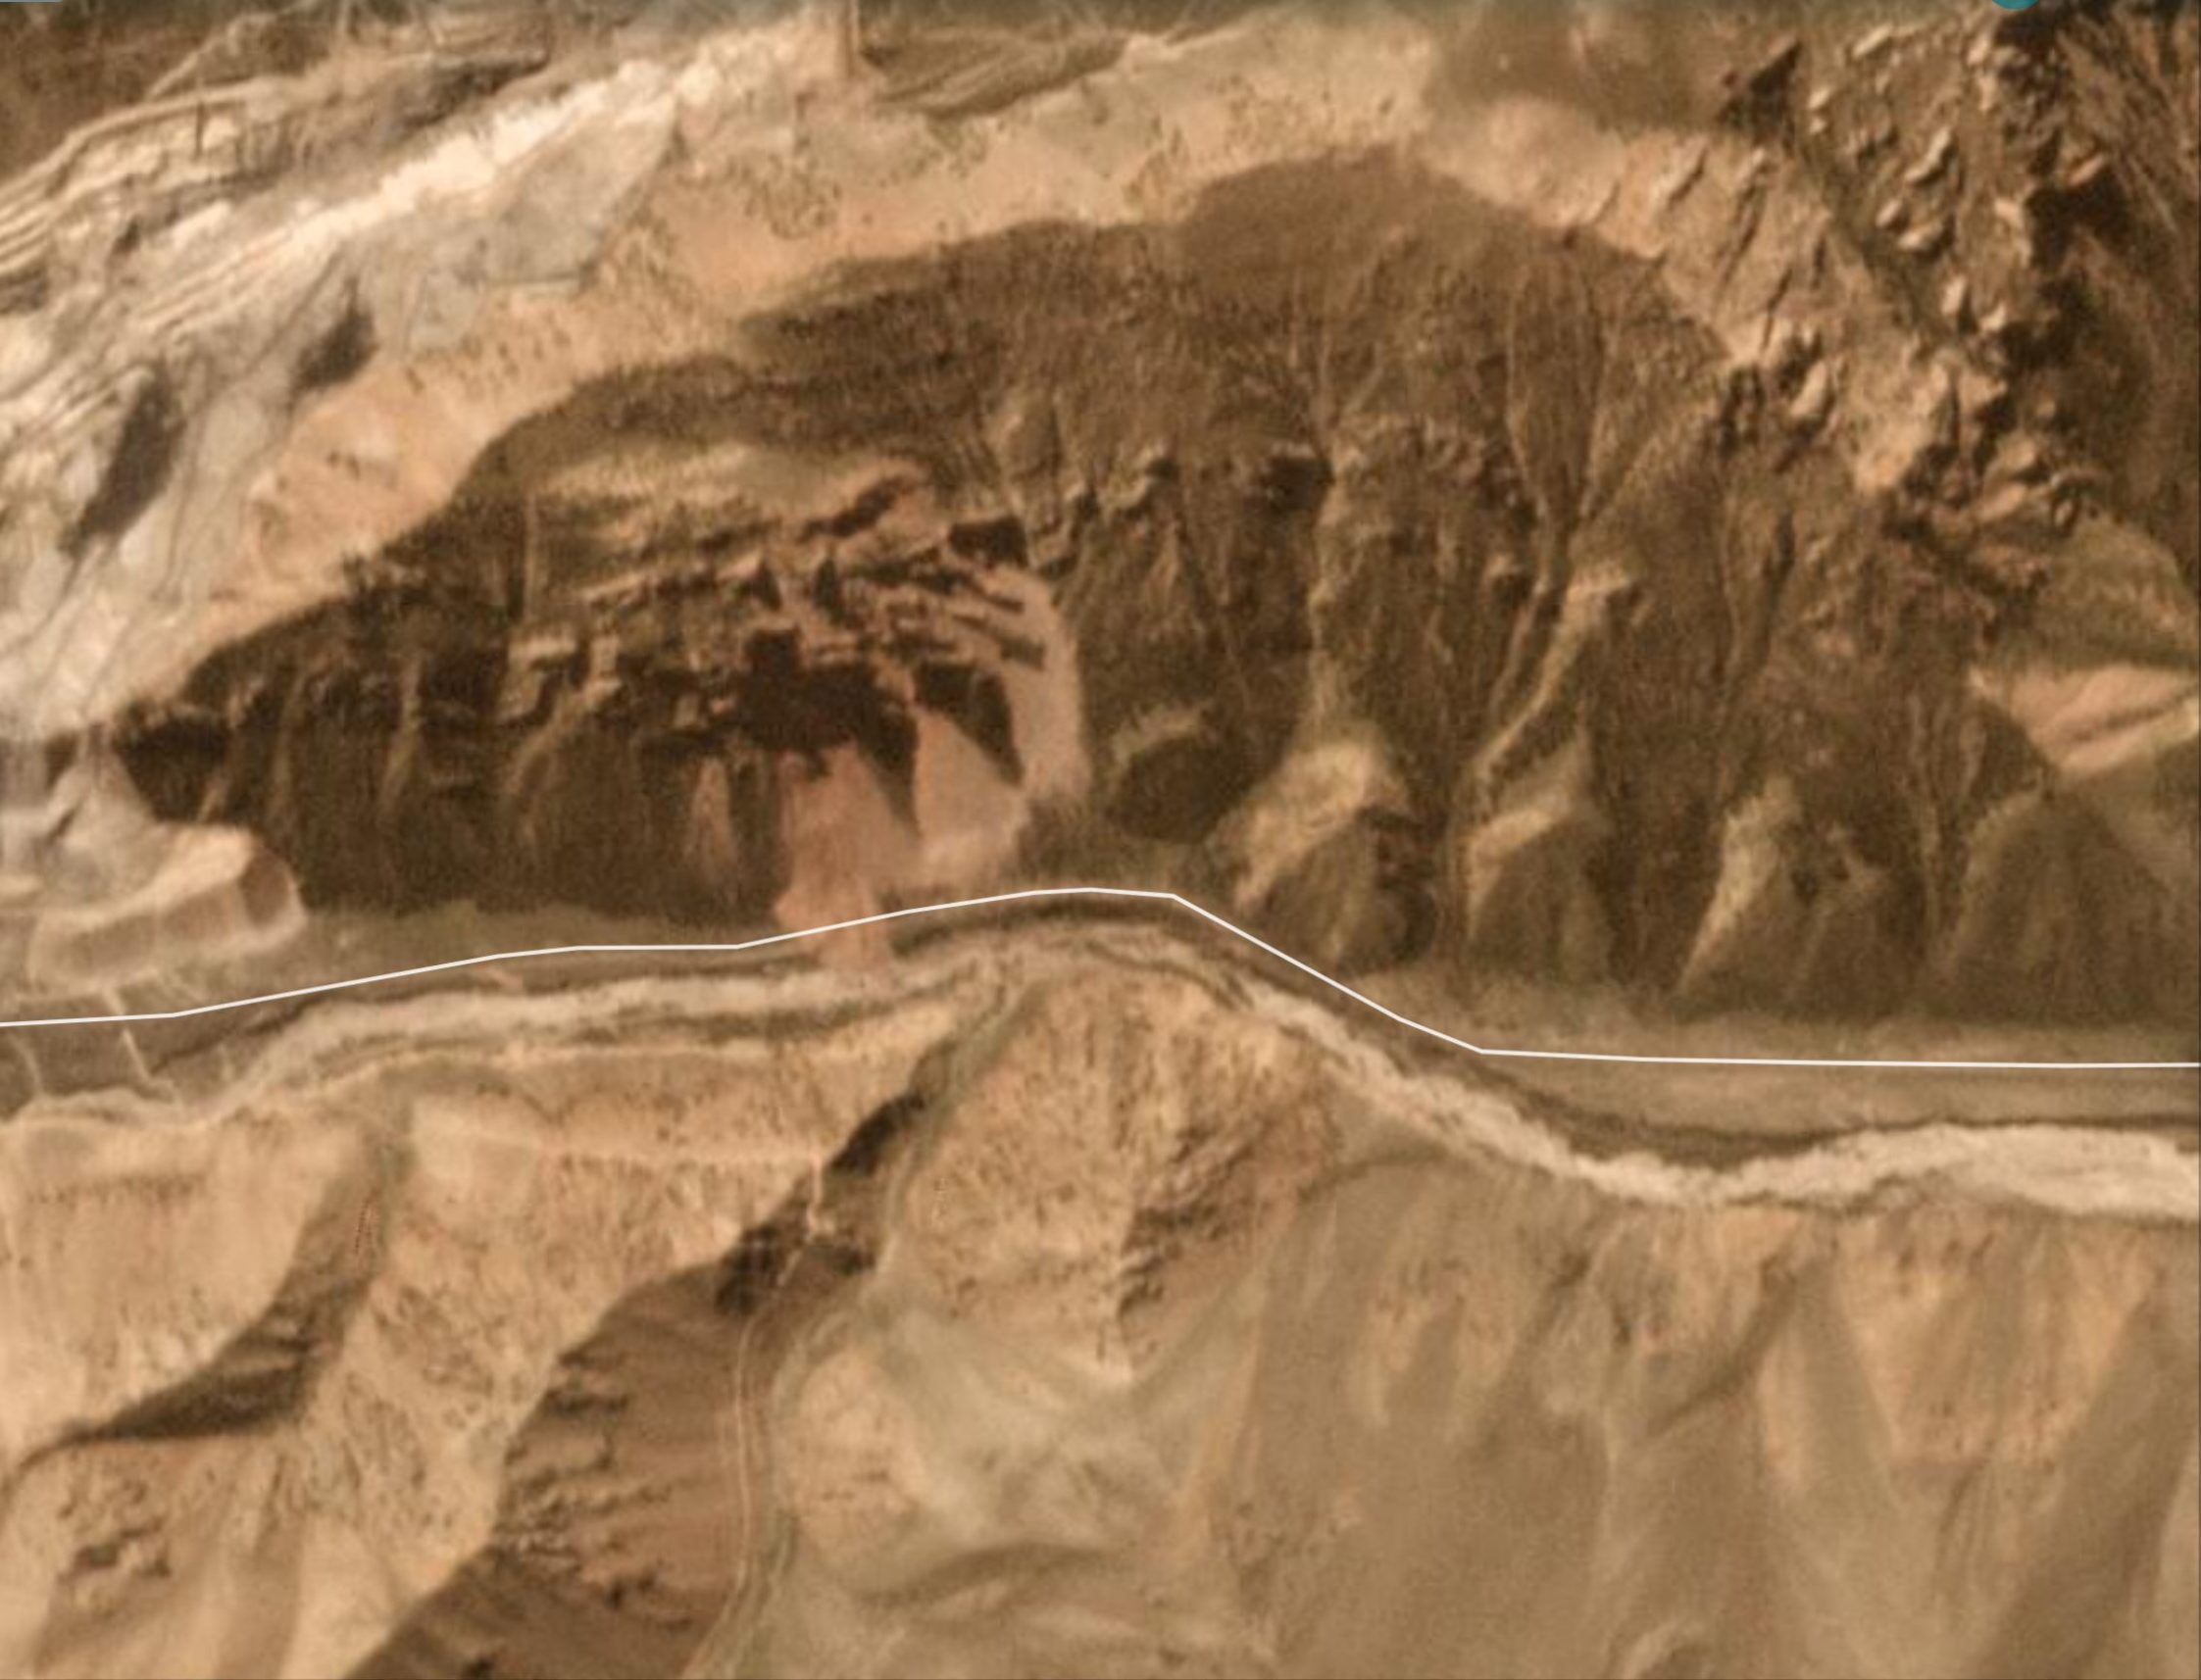 Planet Labs image of the site of the 14 September 2020 landslide at Kara-Keche in Kyrgyzstan.